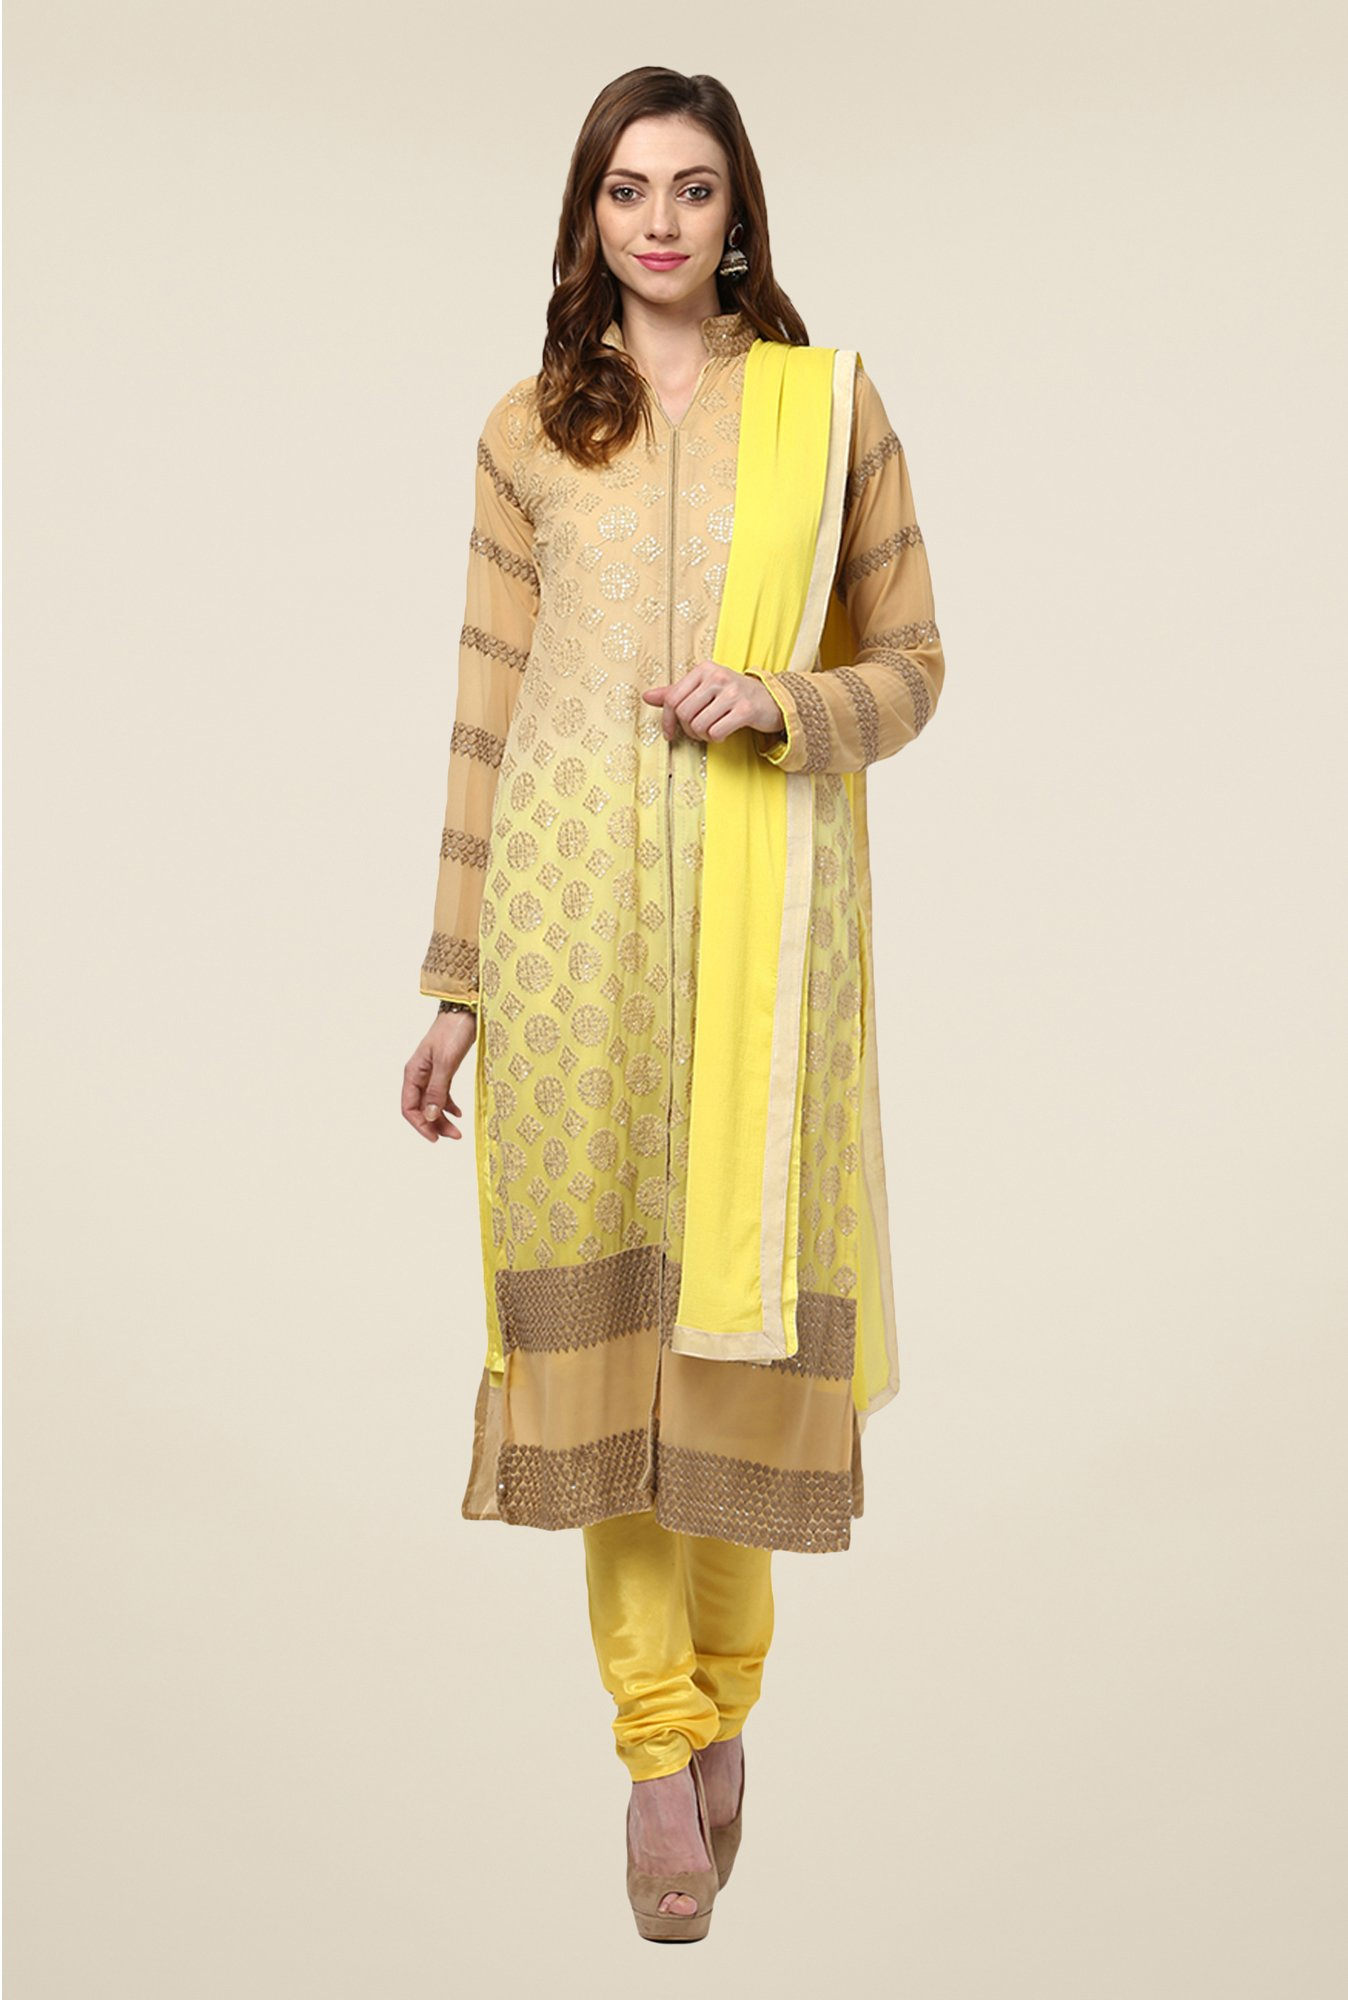 Yepme Beige & Yellow Helga Semi Stitched Suit Set